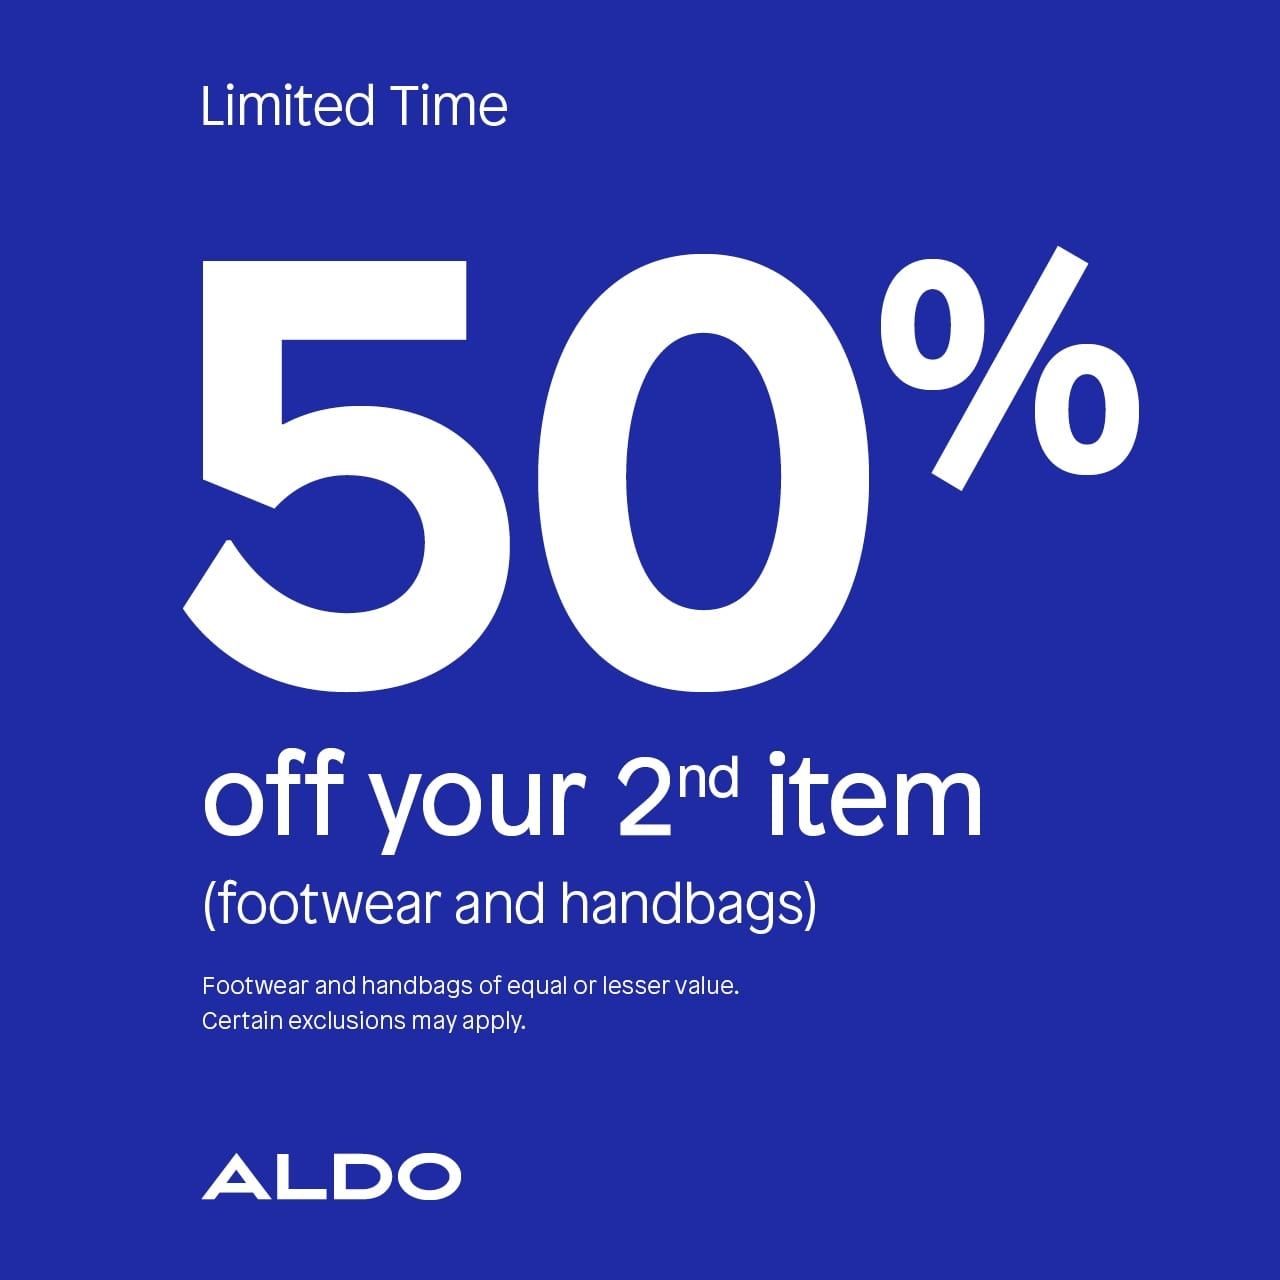 0f4662ca6 Get 50% Off Your 2nd Item